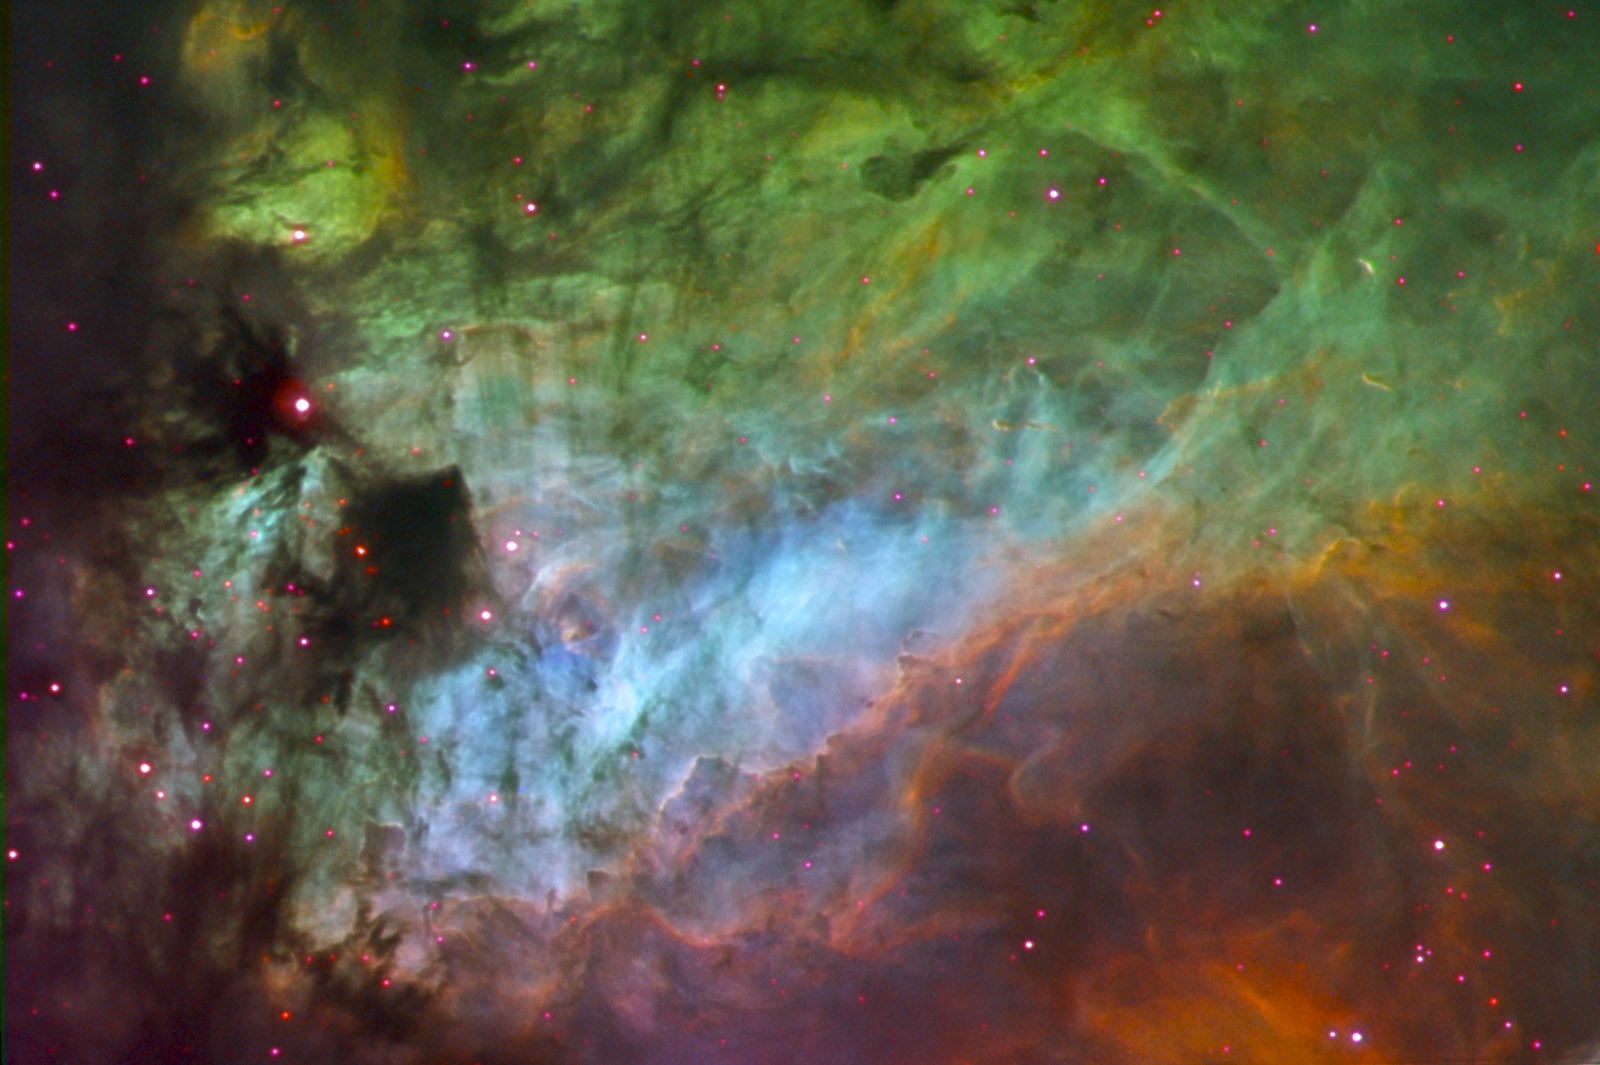 omega nebula nasa - photo #15